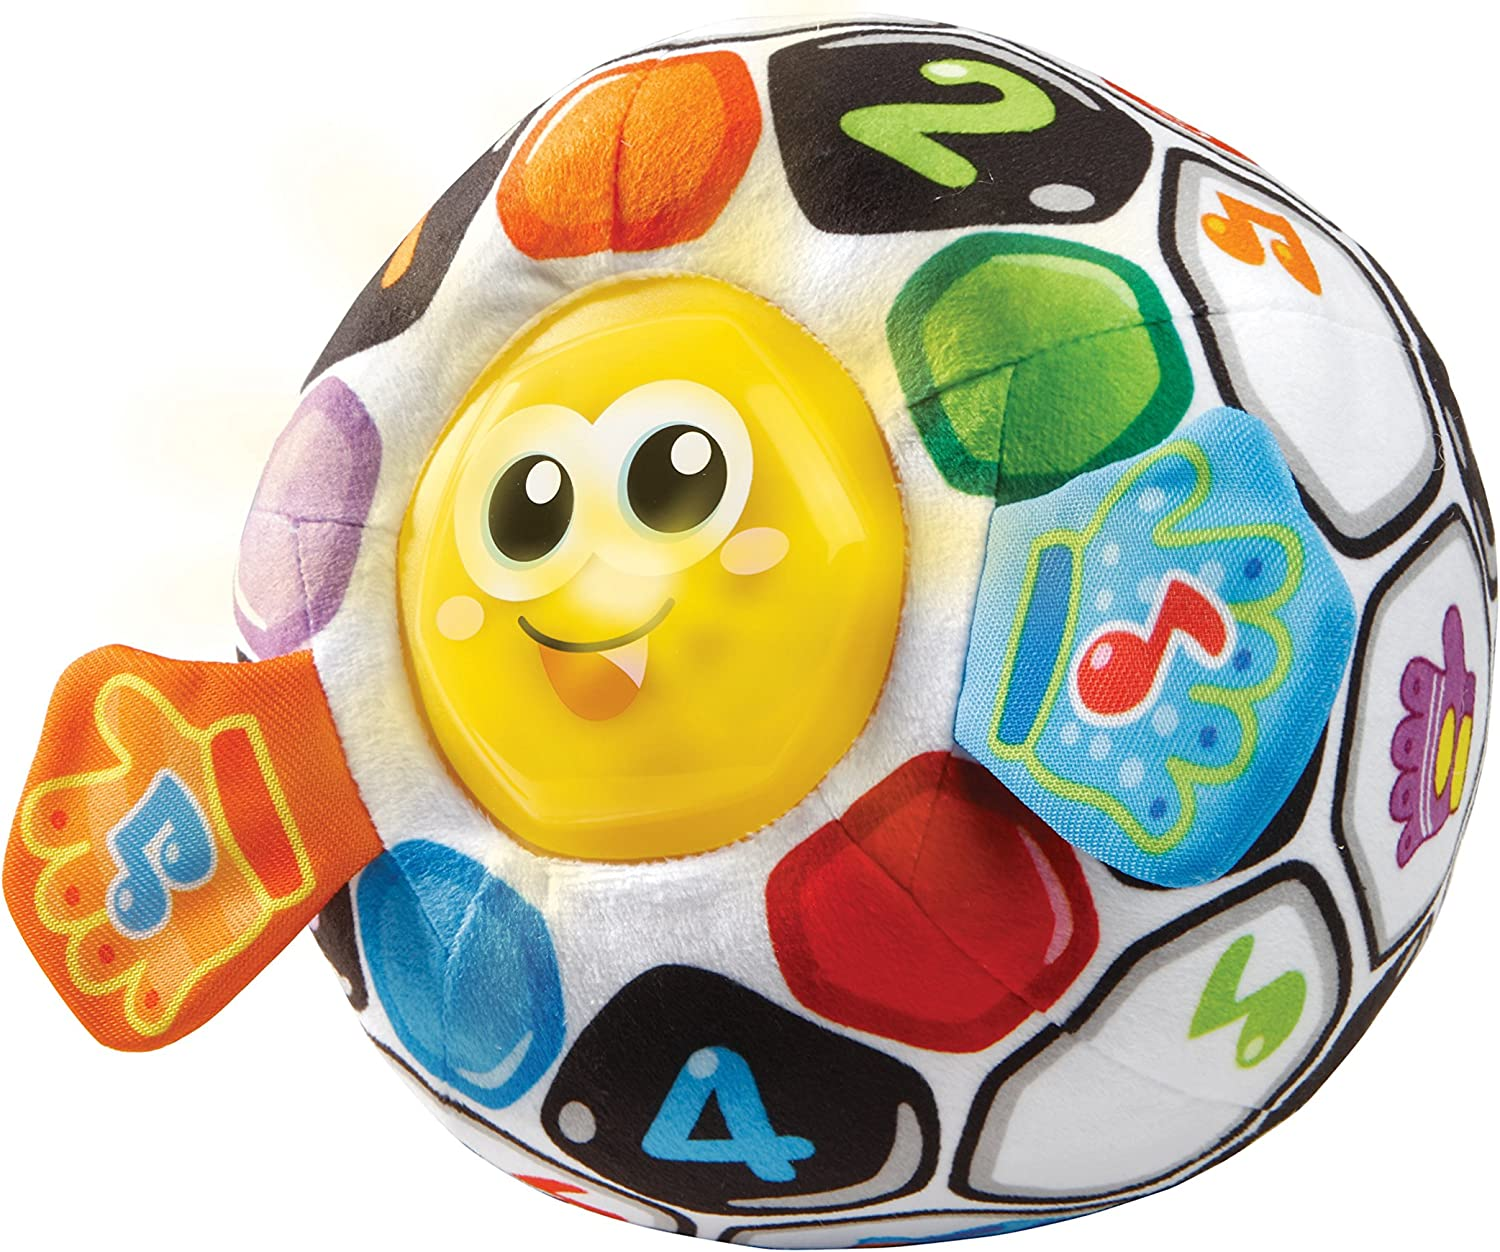 VTech-80-509104 Pelota de fútbol, Multicolor (80-509104): Amazon ...